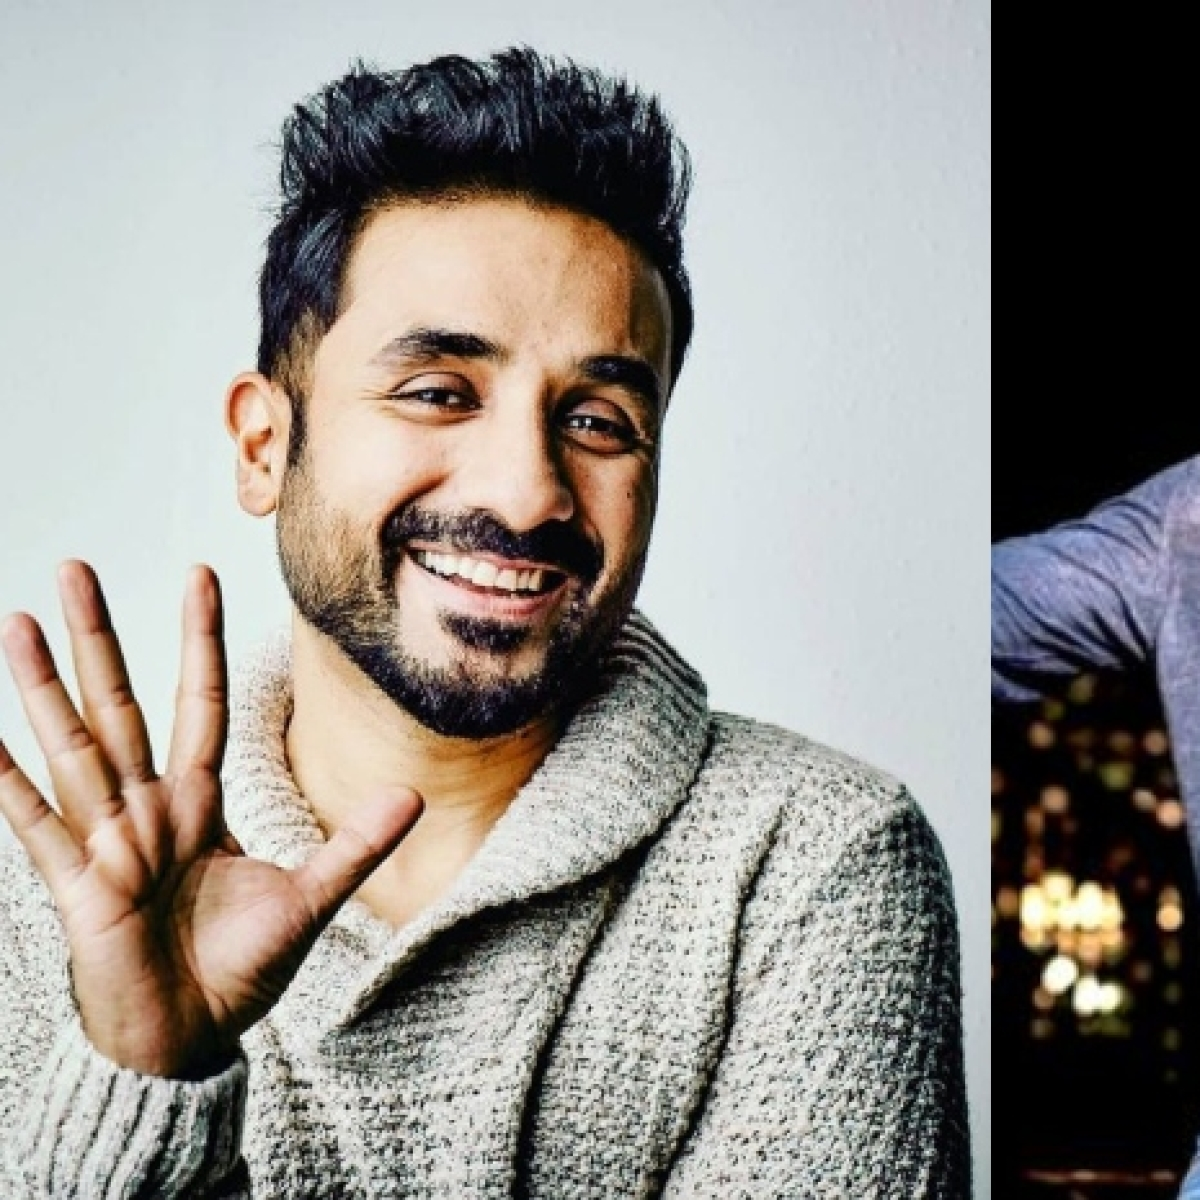 Twitter user says Vir Das for 'PM 2024', comedian replies 'Wrong number, dial Sonu Sood'